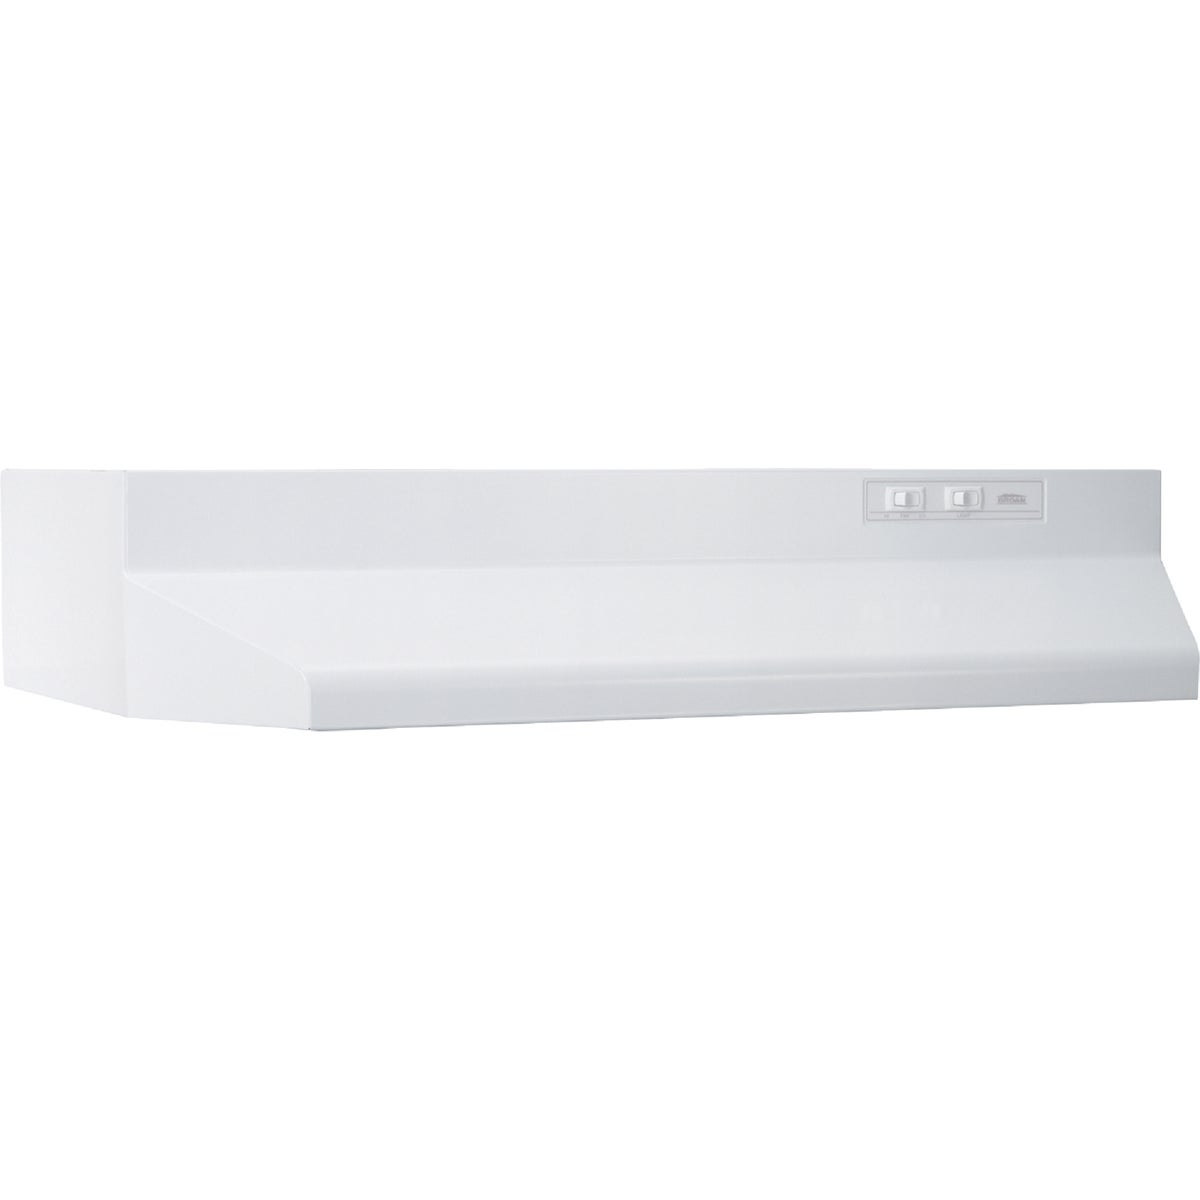 "30"" WHITE RANGE HOOD - 403001 by Broan Nutone"